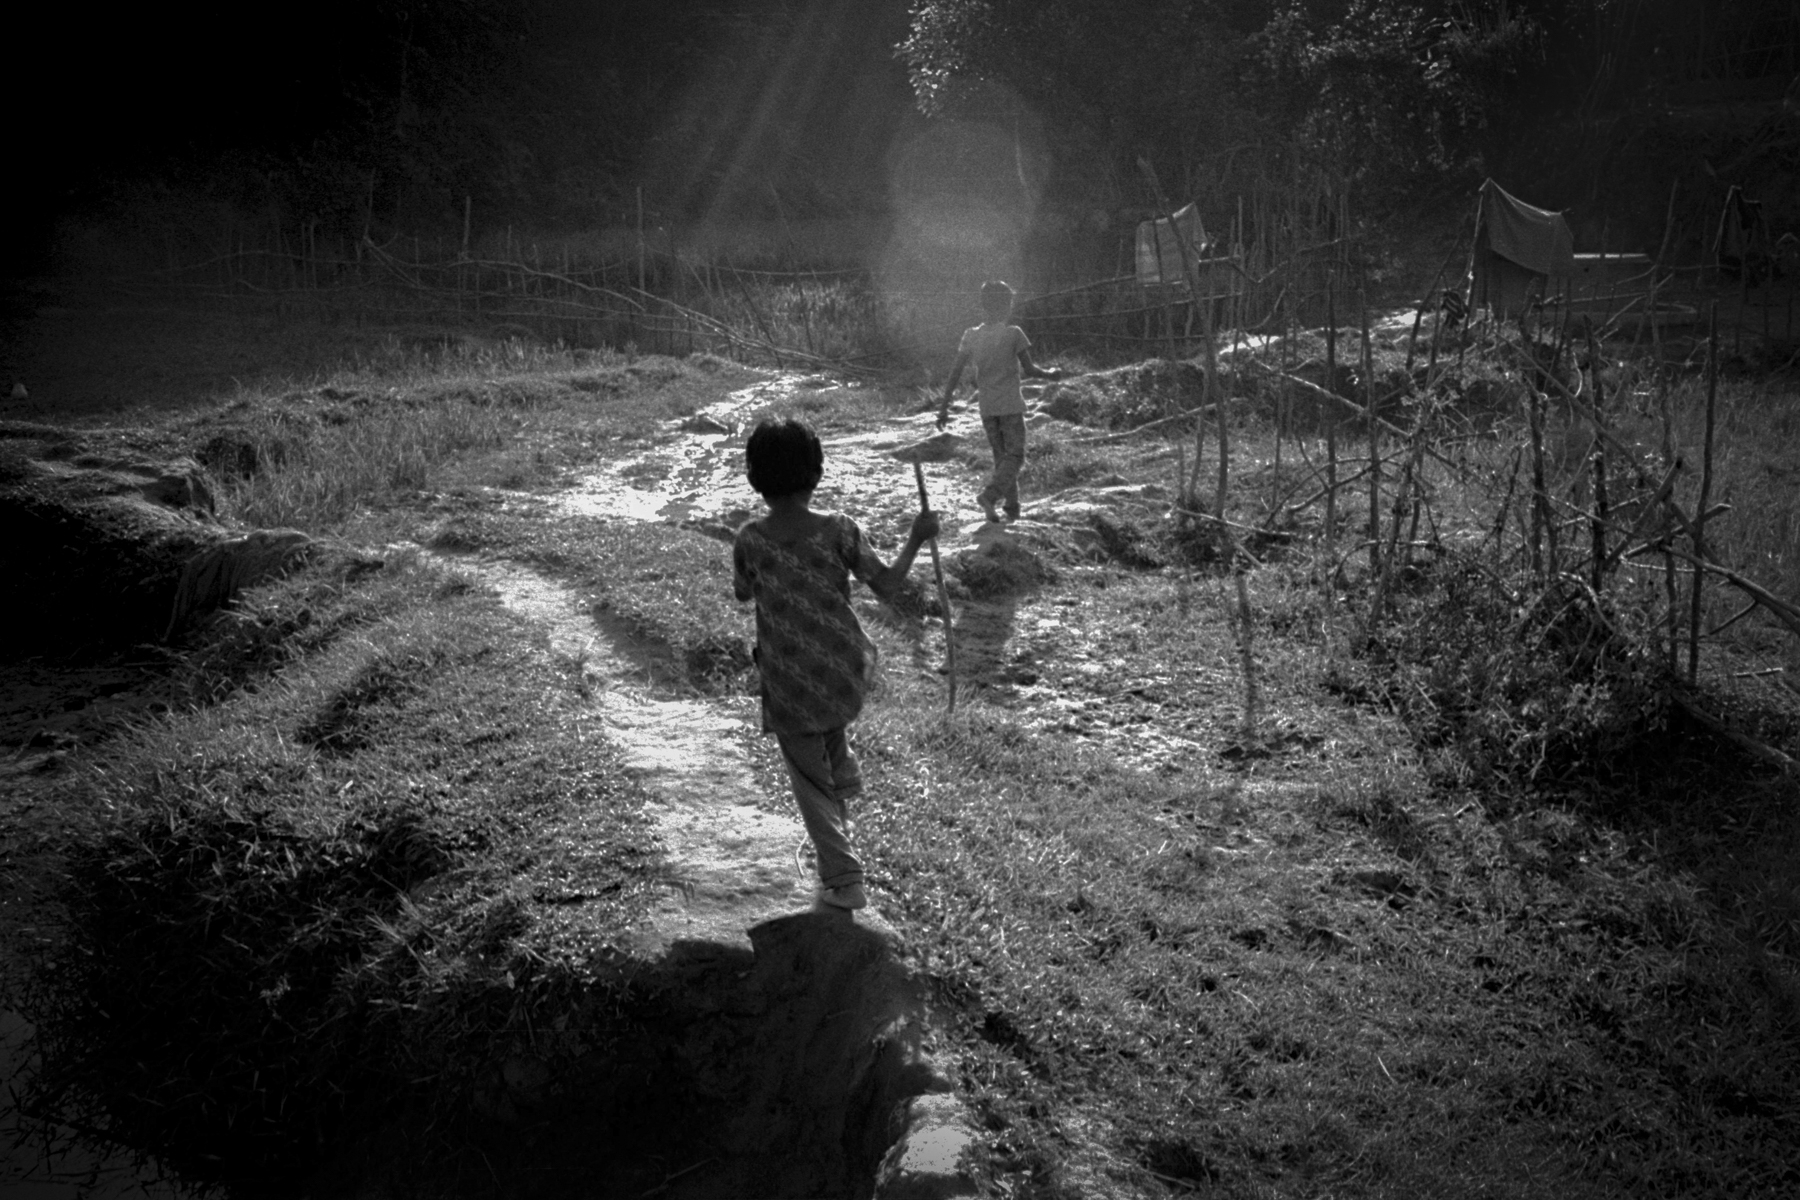 A Rohingya girl and boy run through the Himchari hills in Cox's Bazar, Bangladesh.